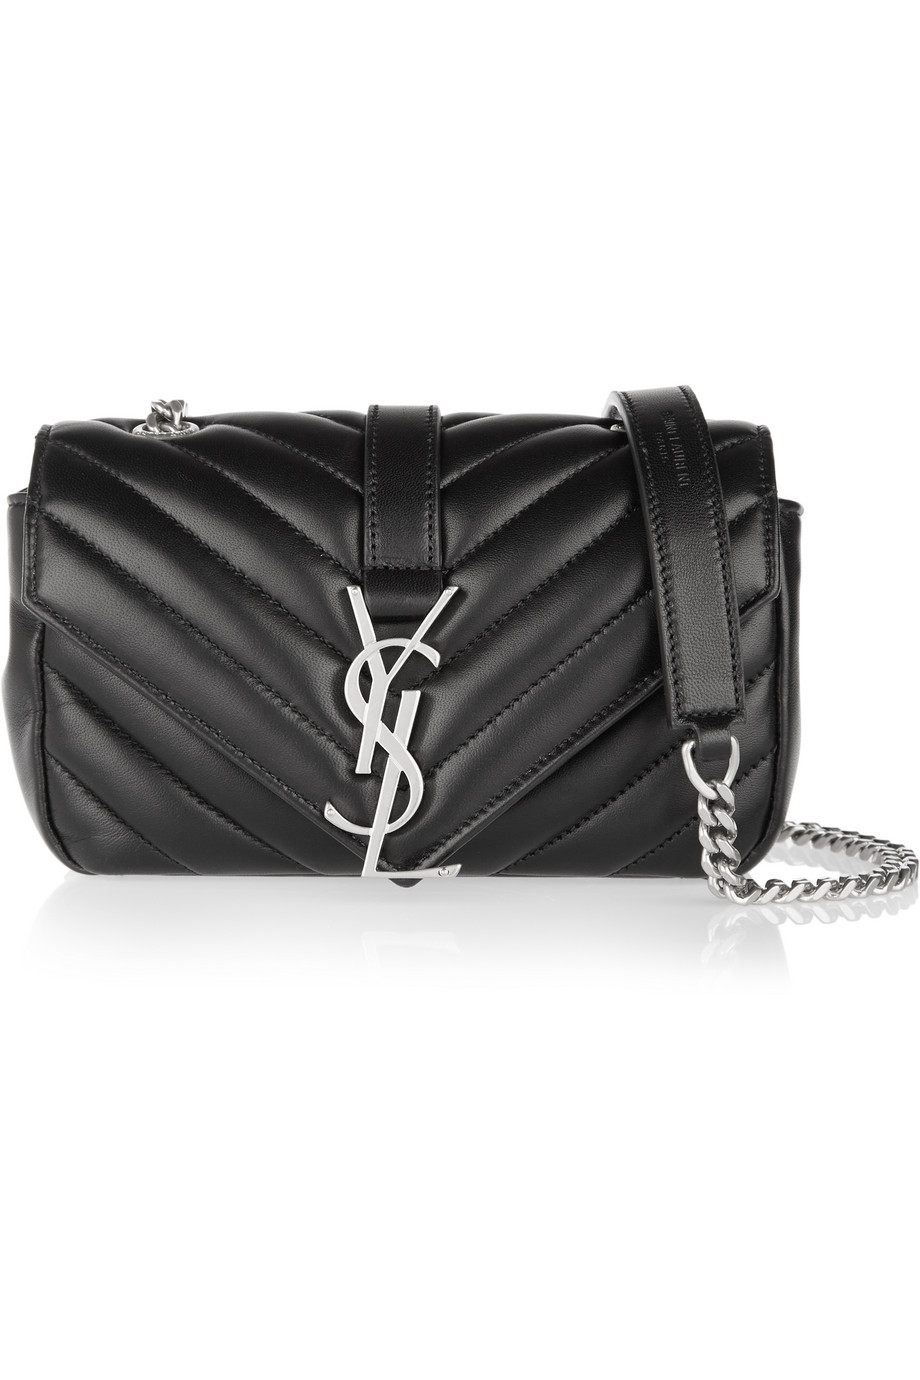 Saint Laurent Baby Chain Monogramme Quilted Leather Shoulder Bag, Black, Women's, Size: One Size